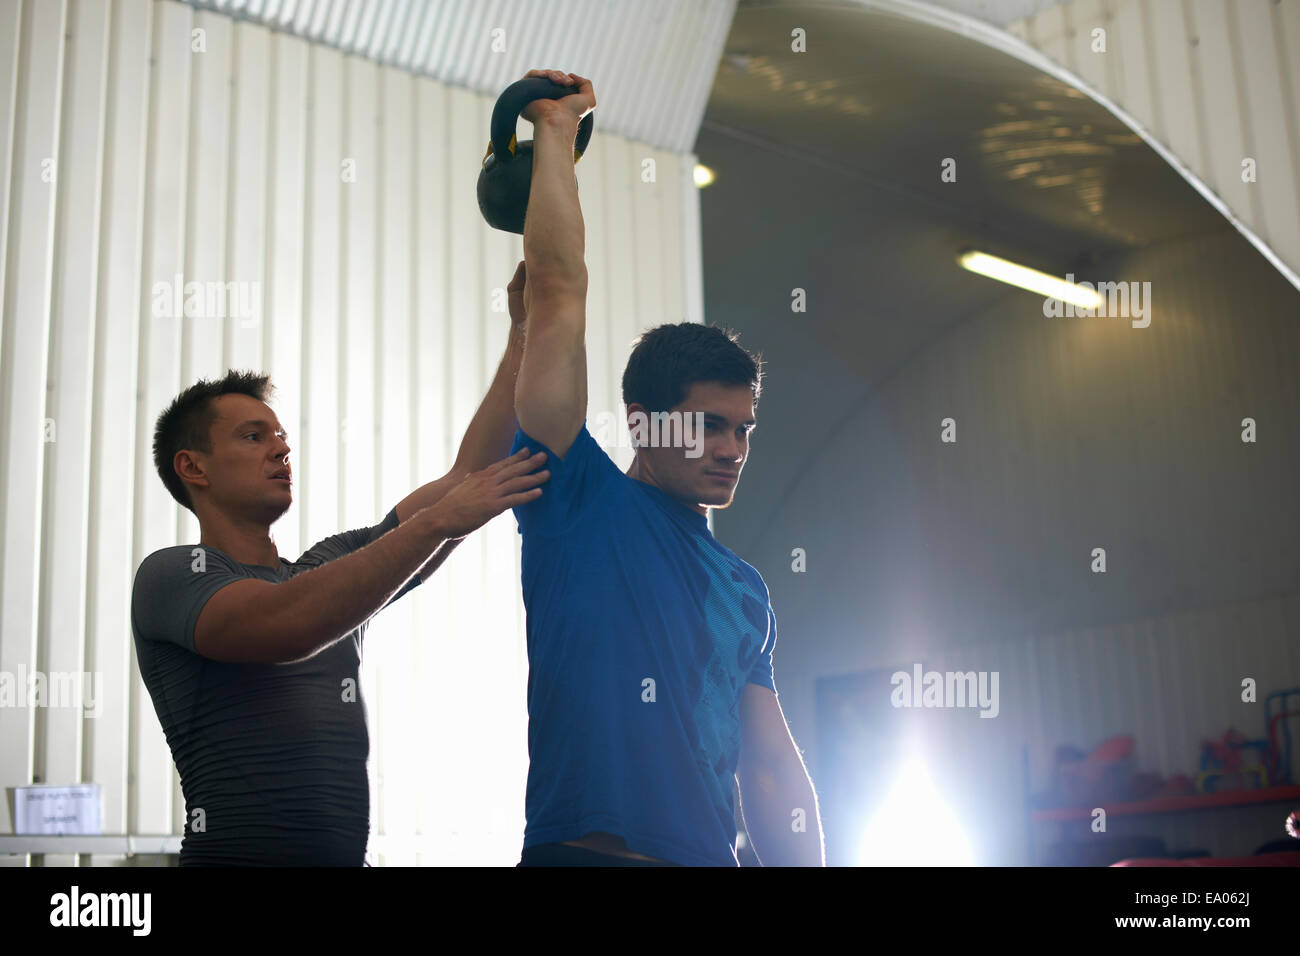 Trainer coaching man with kettlebell in gym Stock Photo